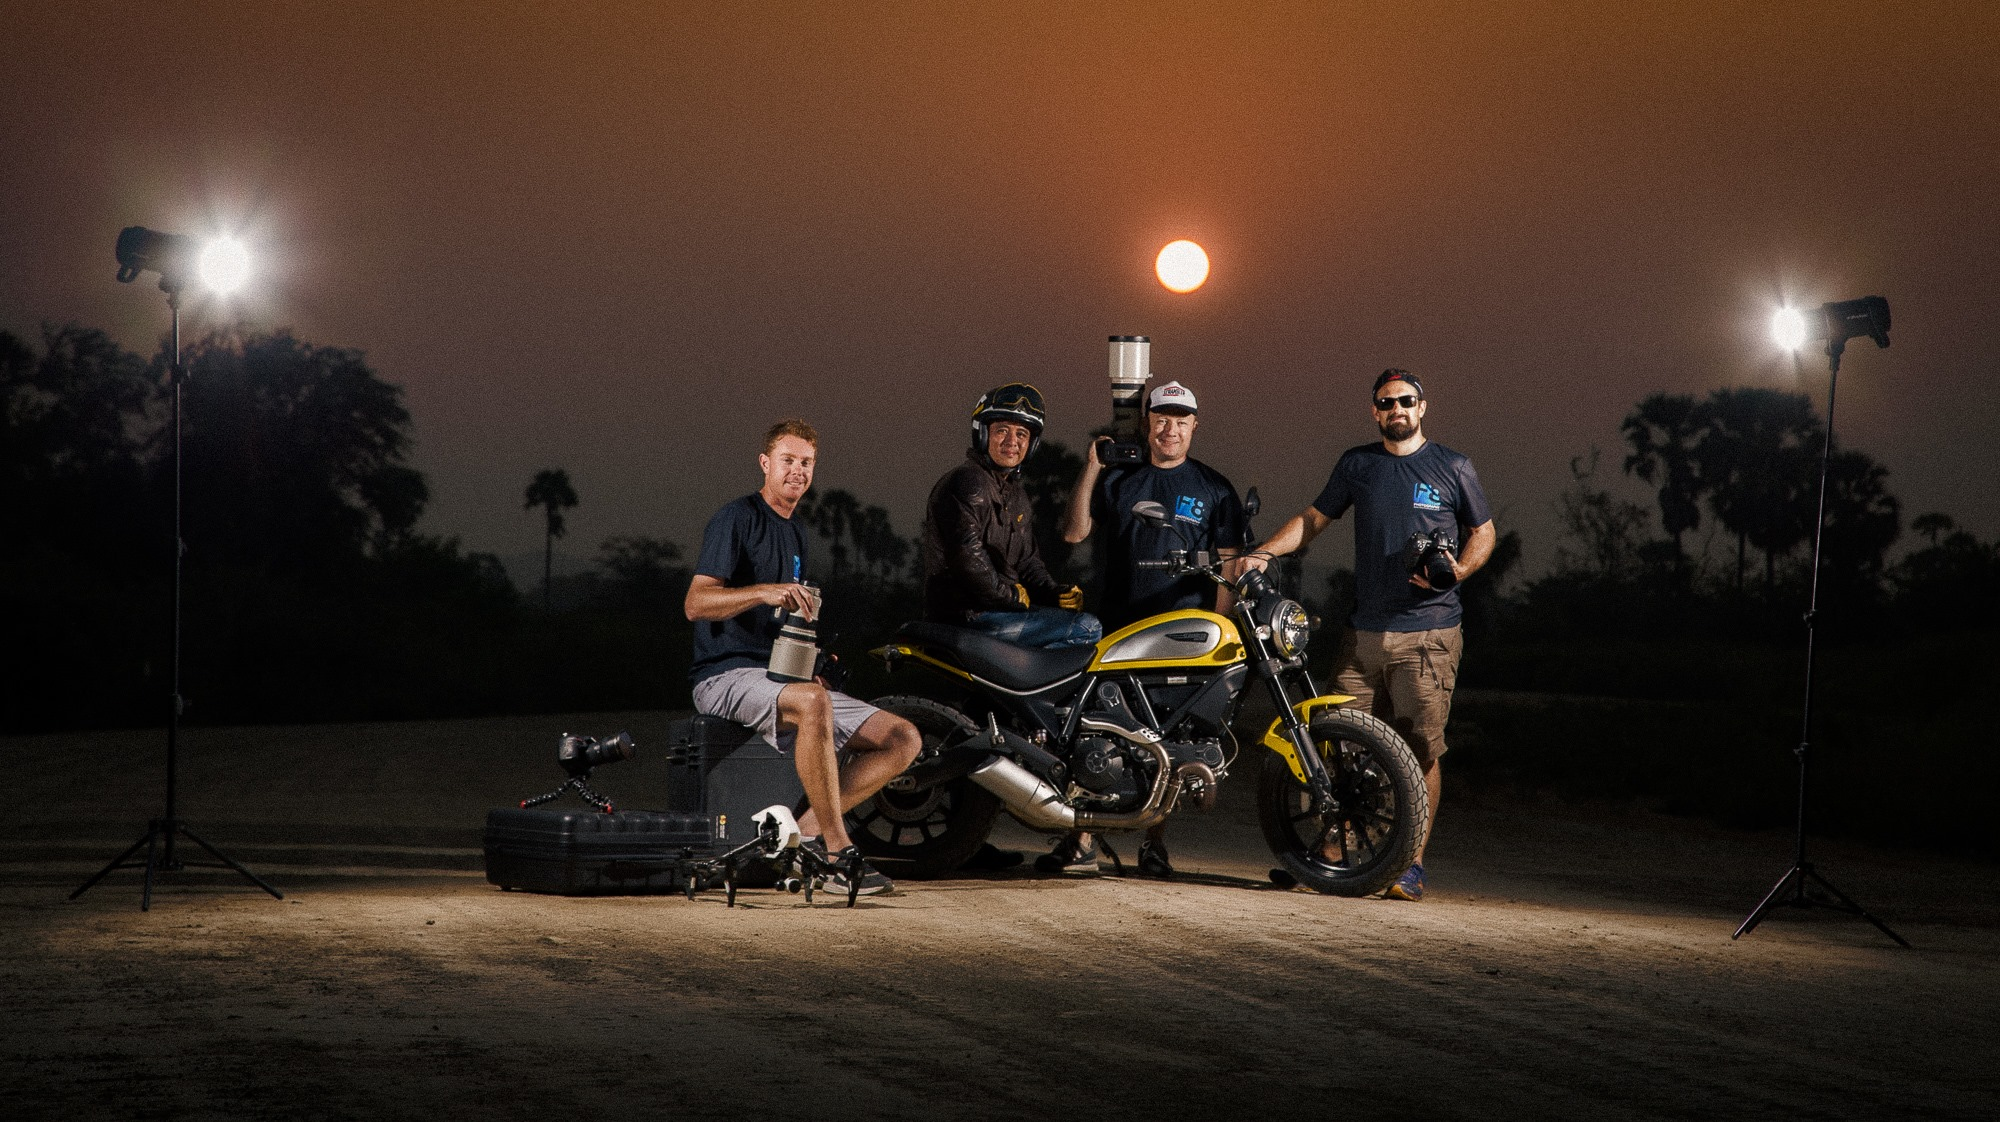 Team F8, 2015 at Ducati Scrambler launch.